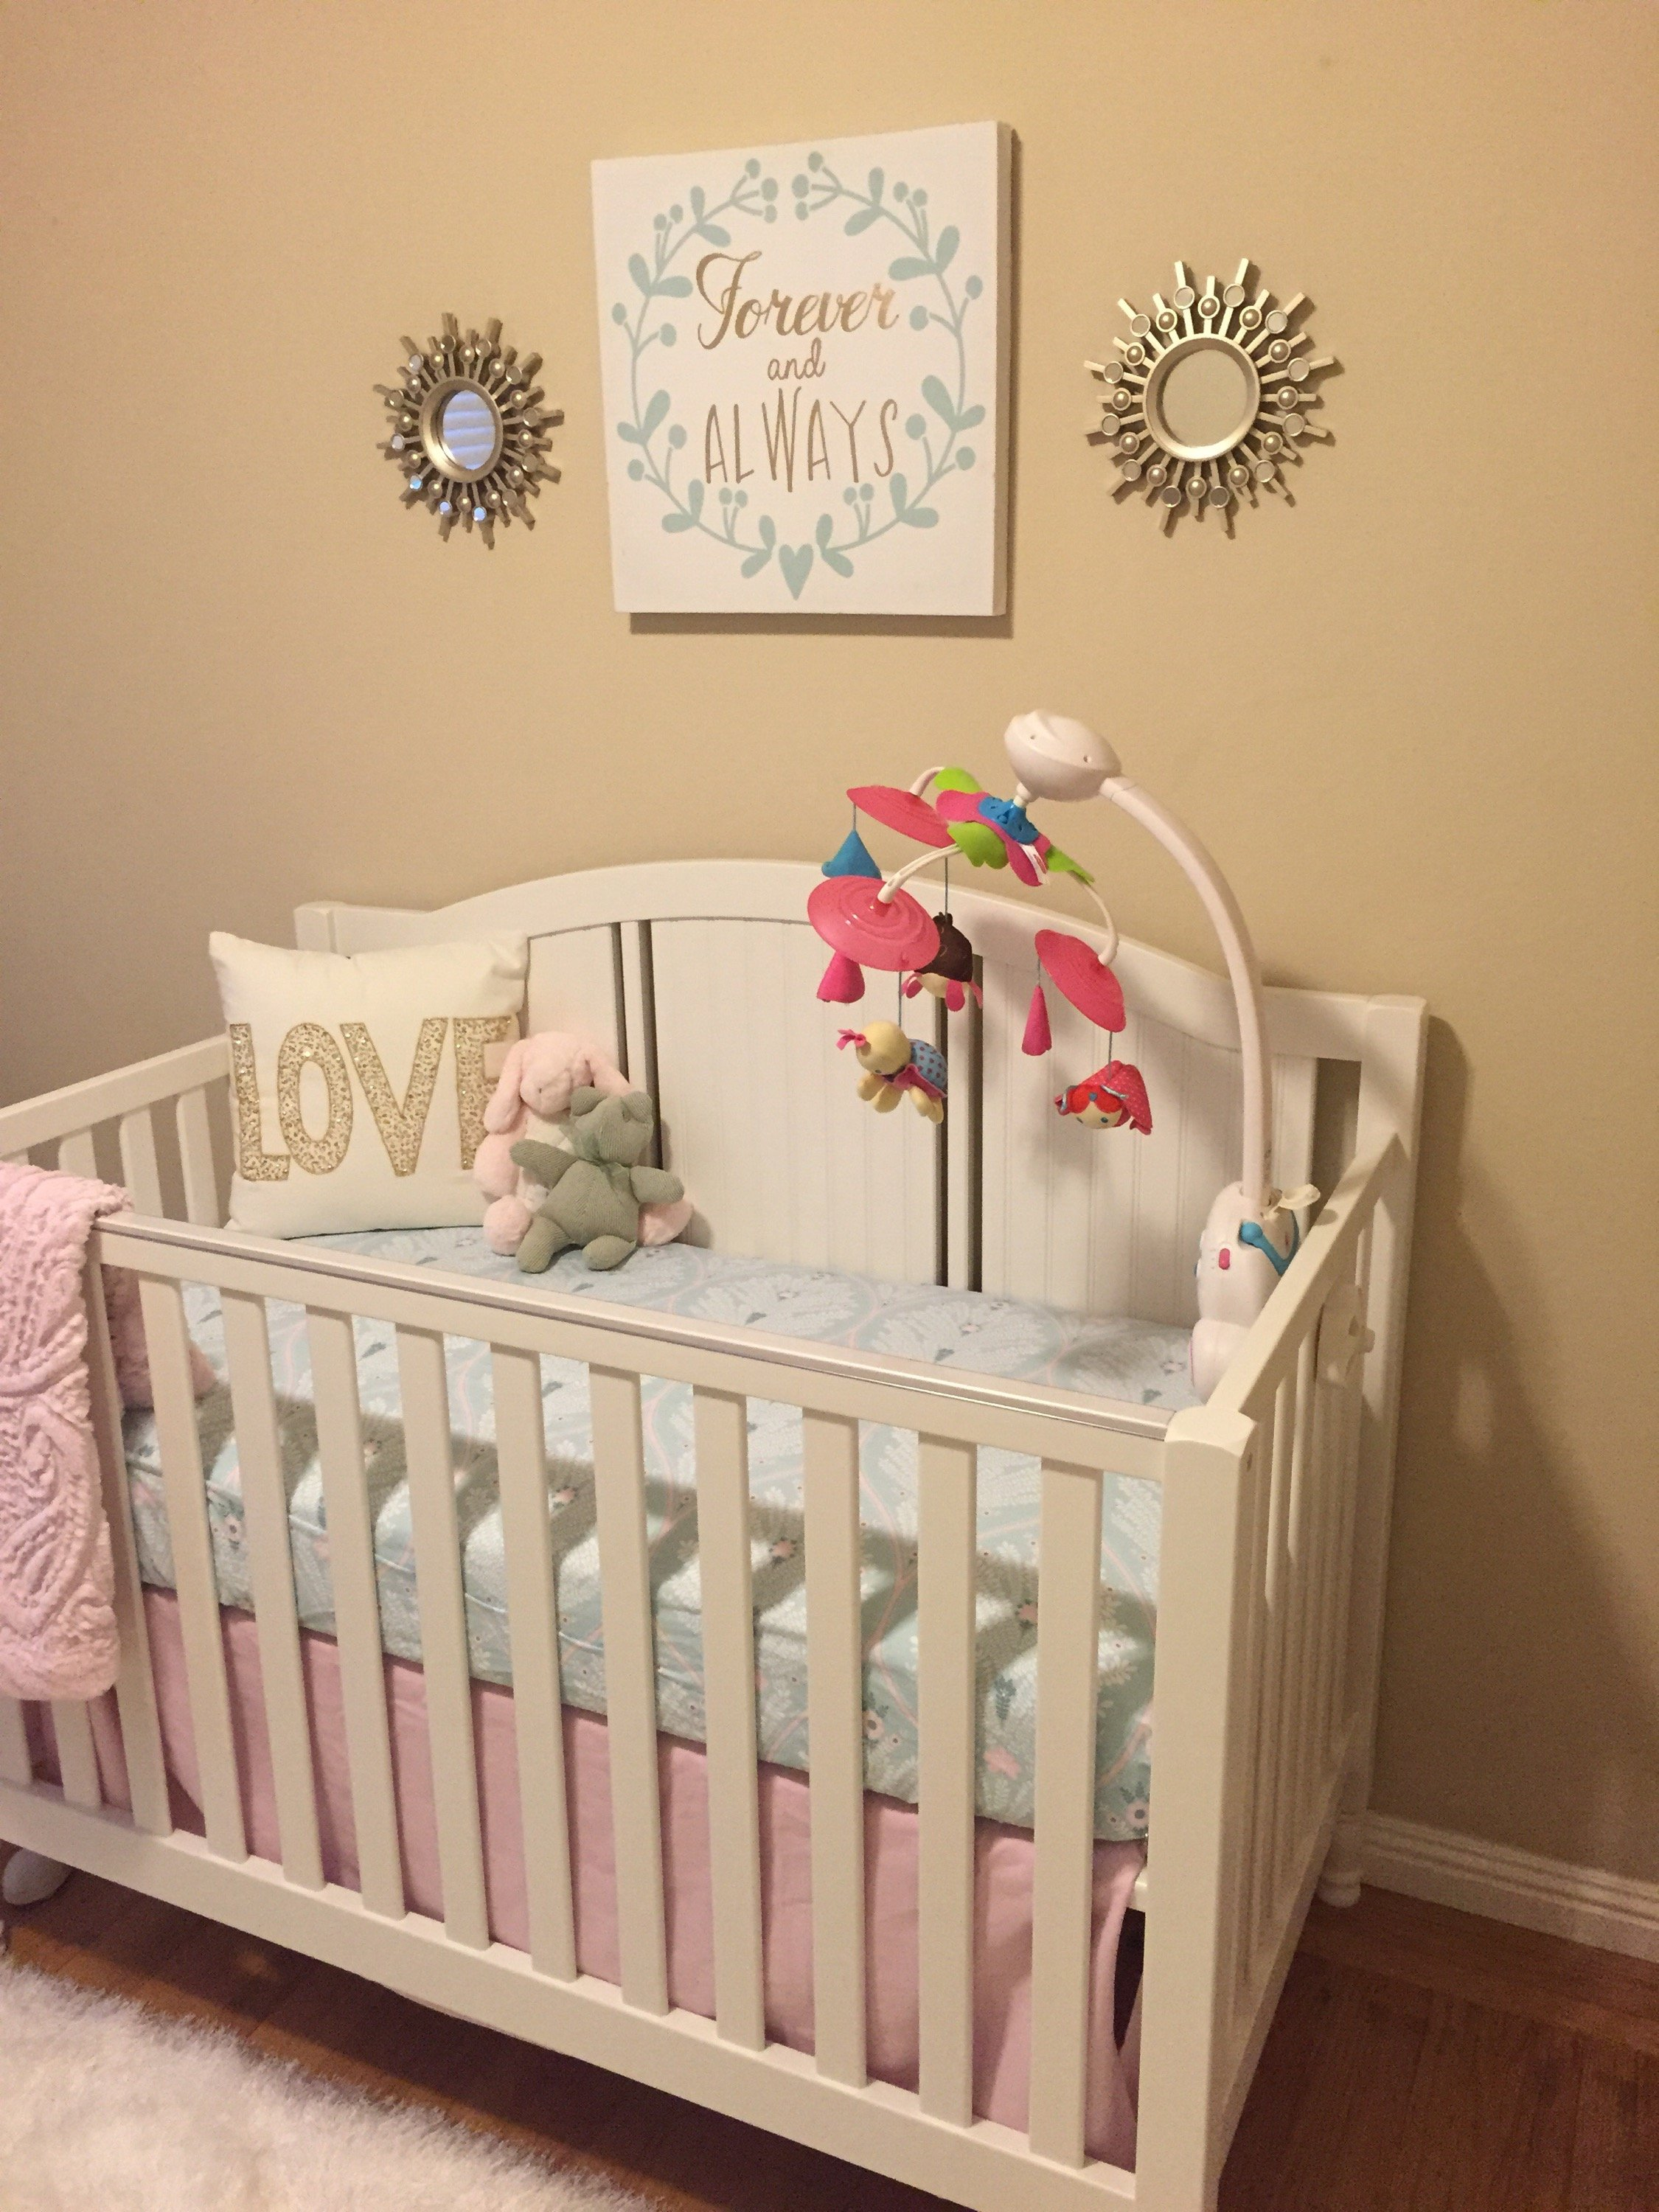 How to style baby's nursery